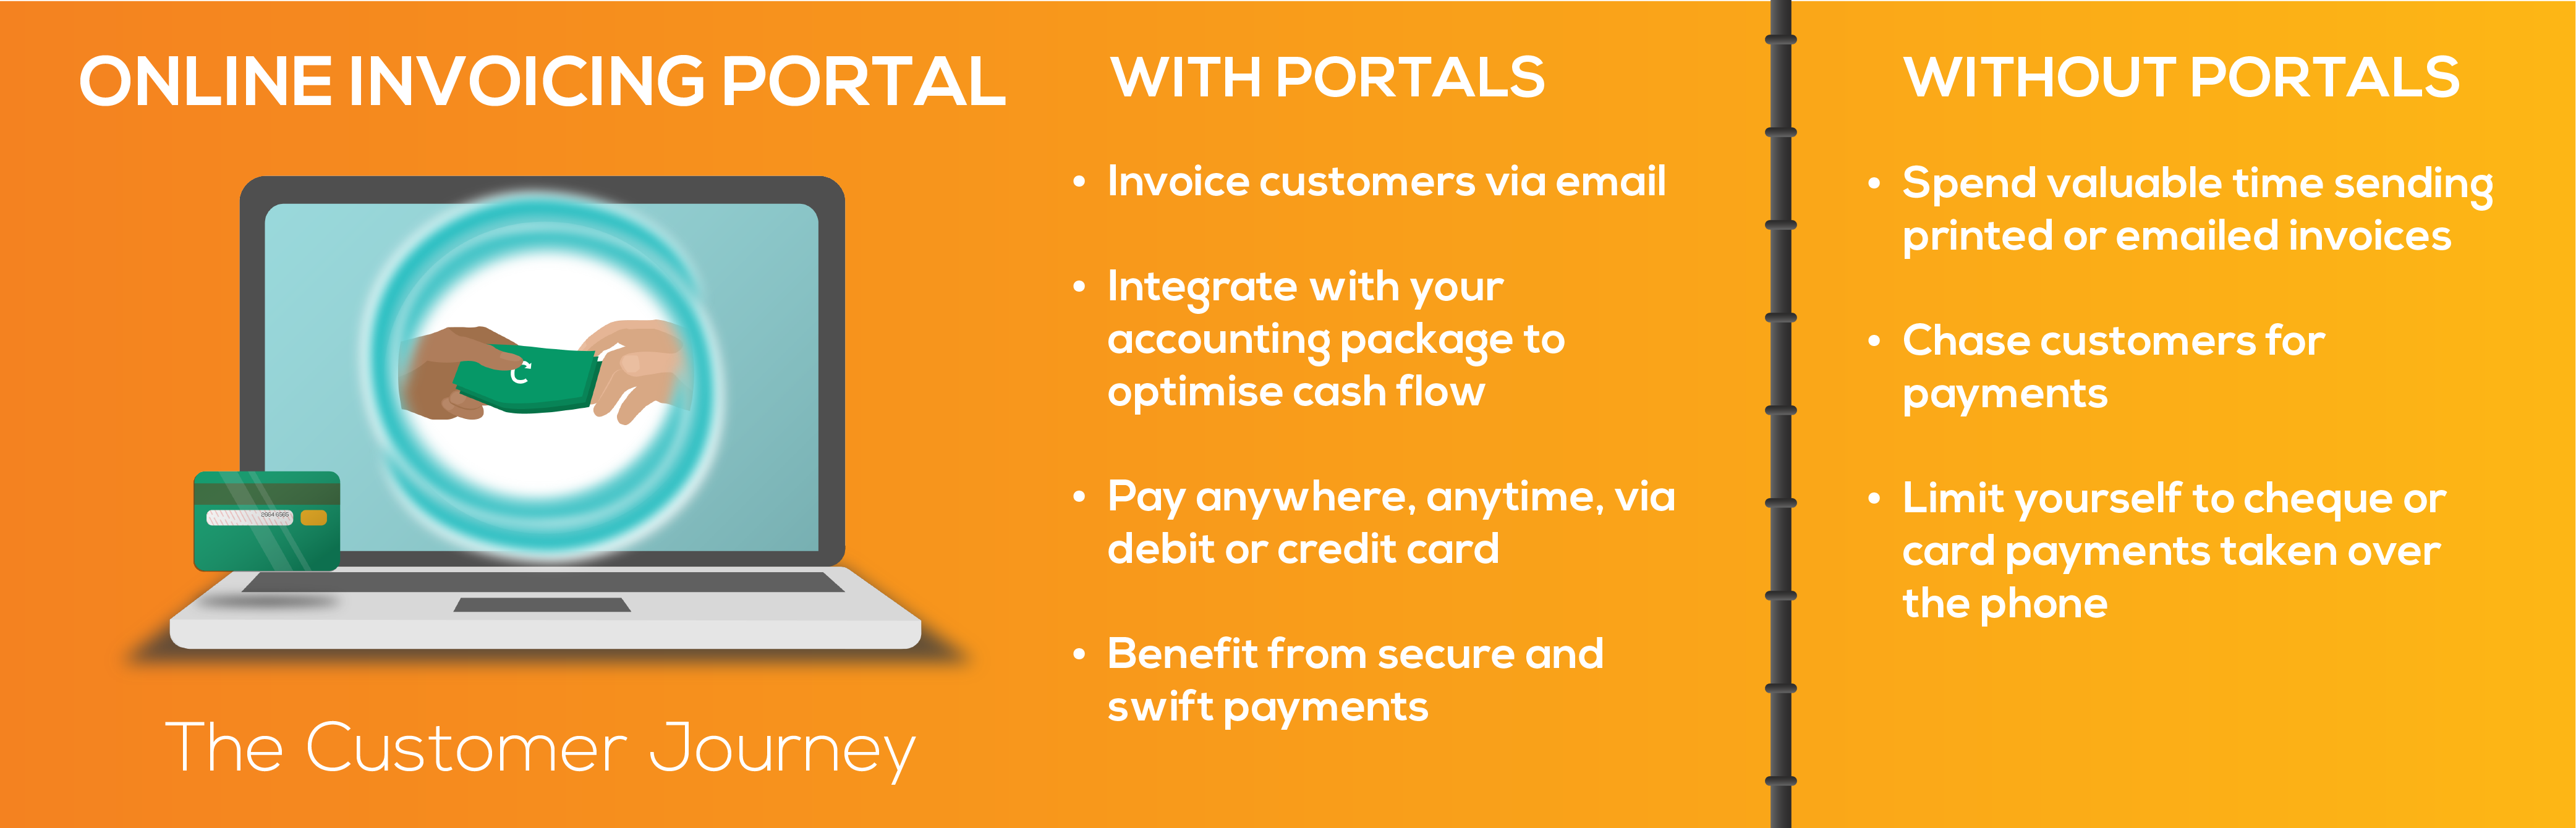 C2 invoicing portal snippet UK-05